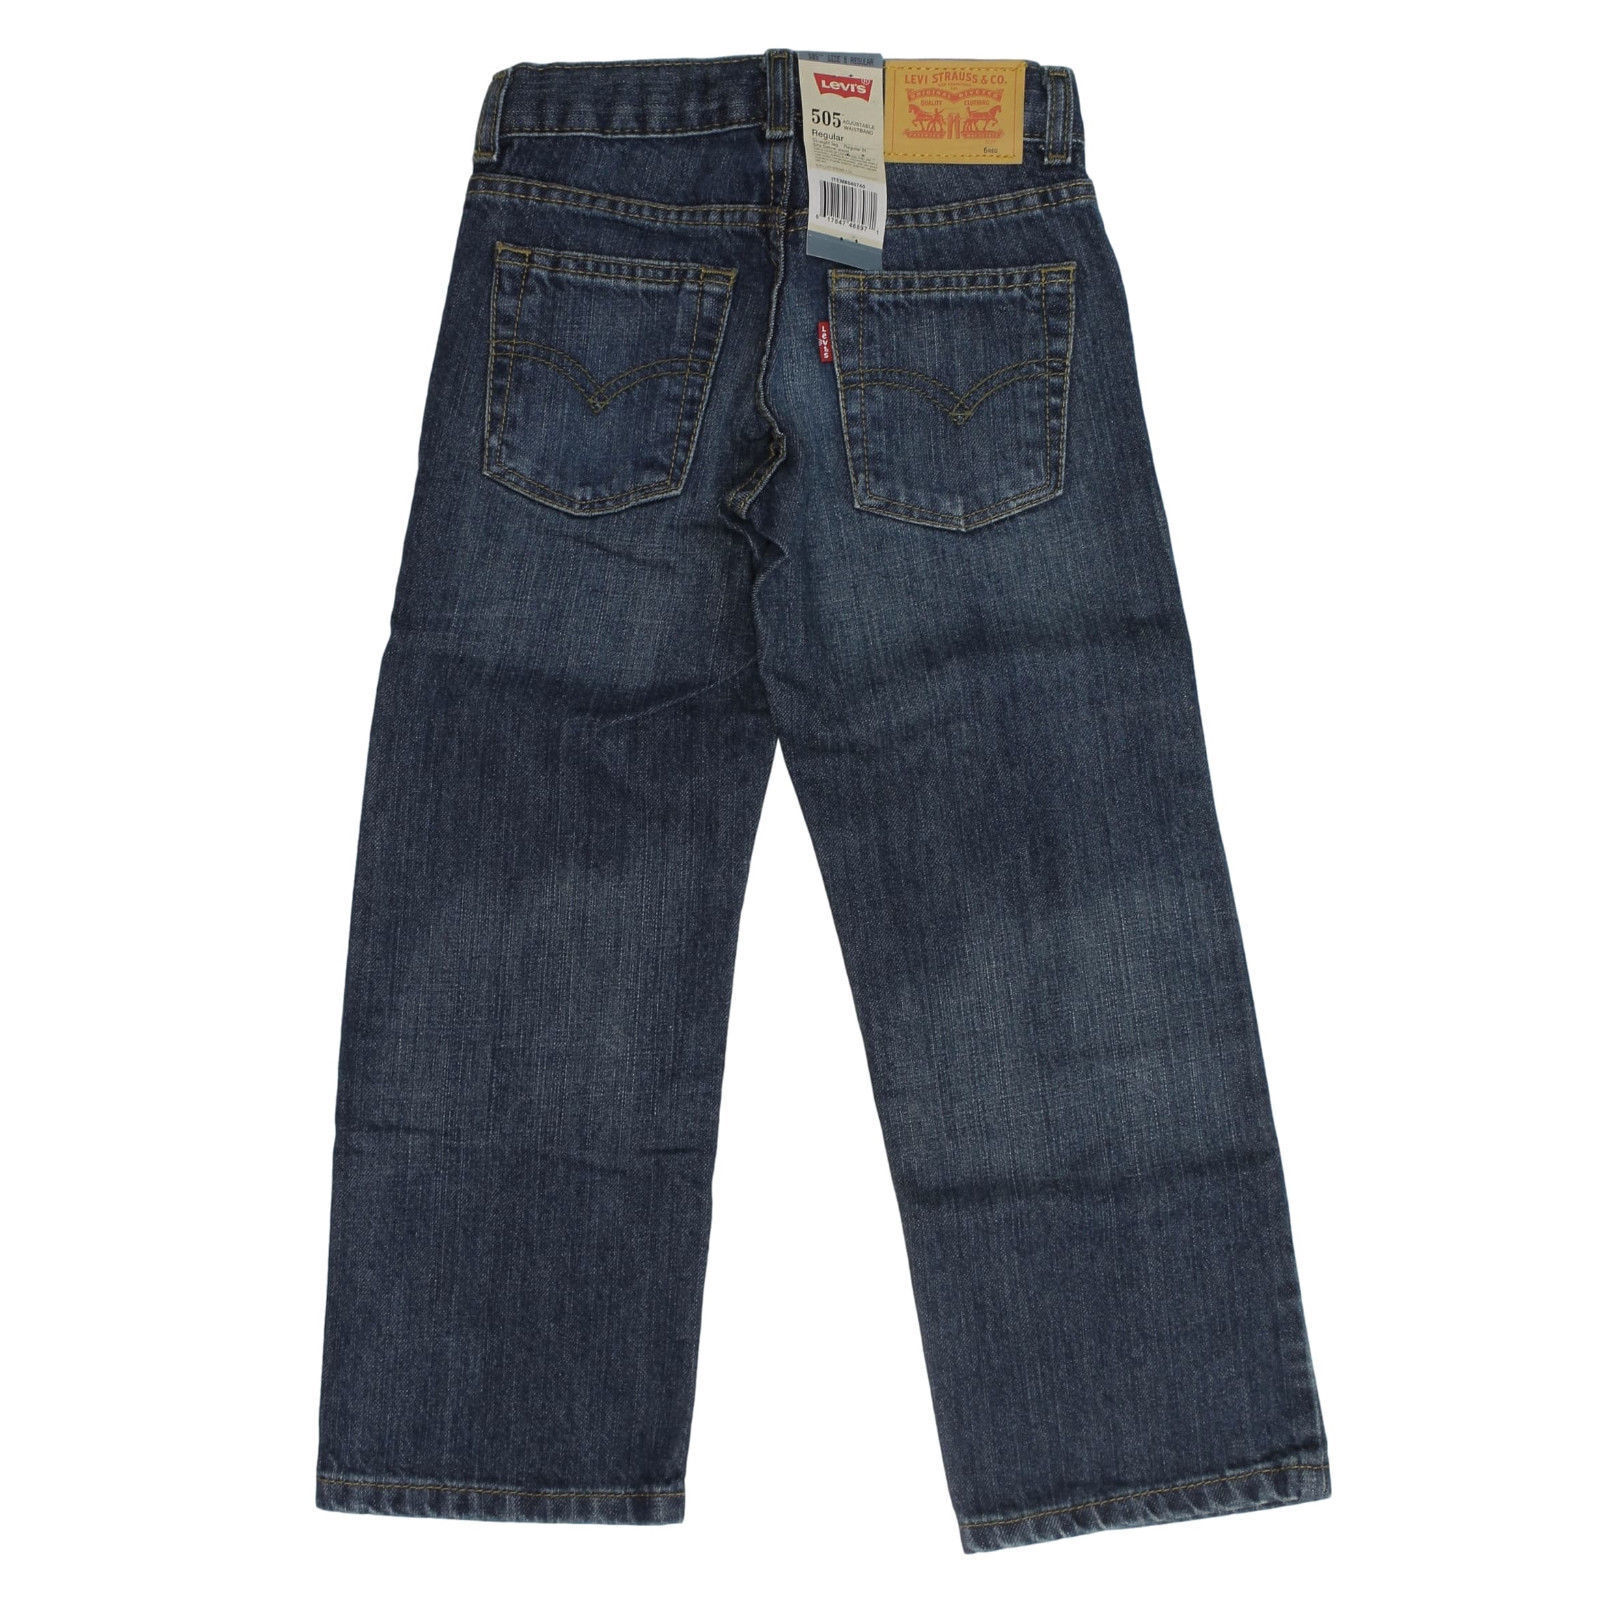 Details about Levi's 505 Straight Leg Regular Fit Jeans for Boys Adjustable Waistband